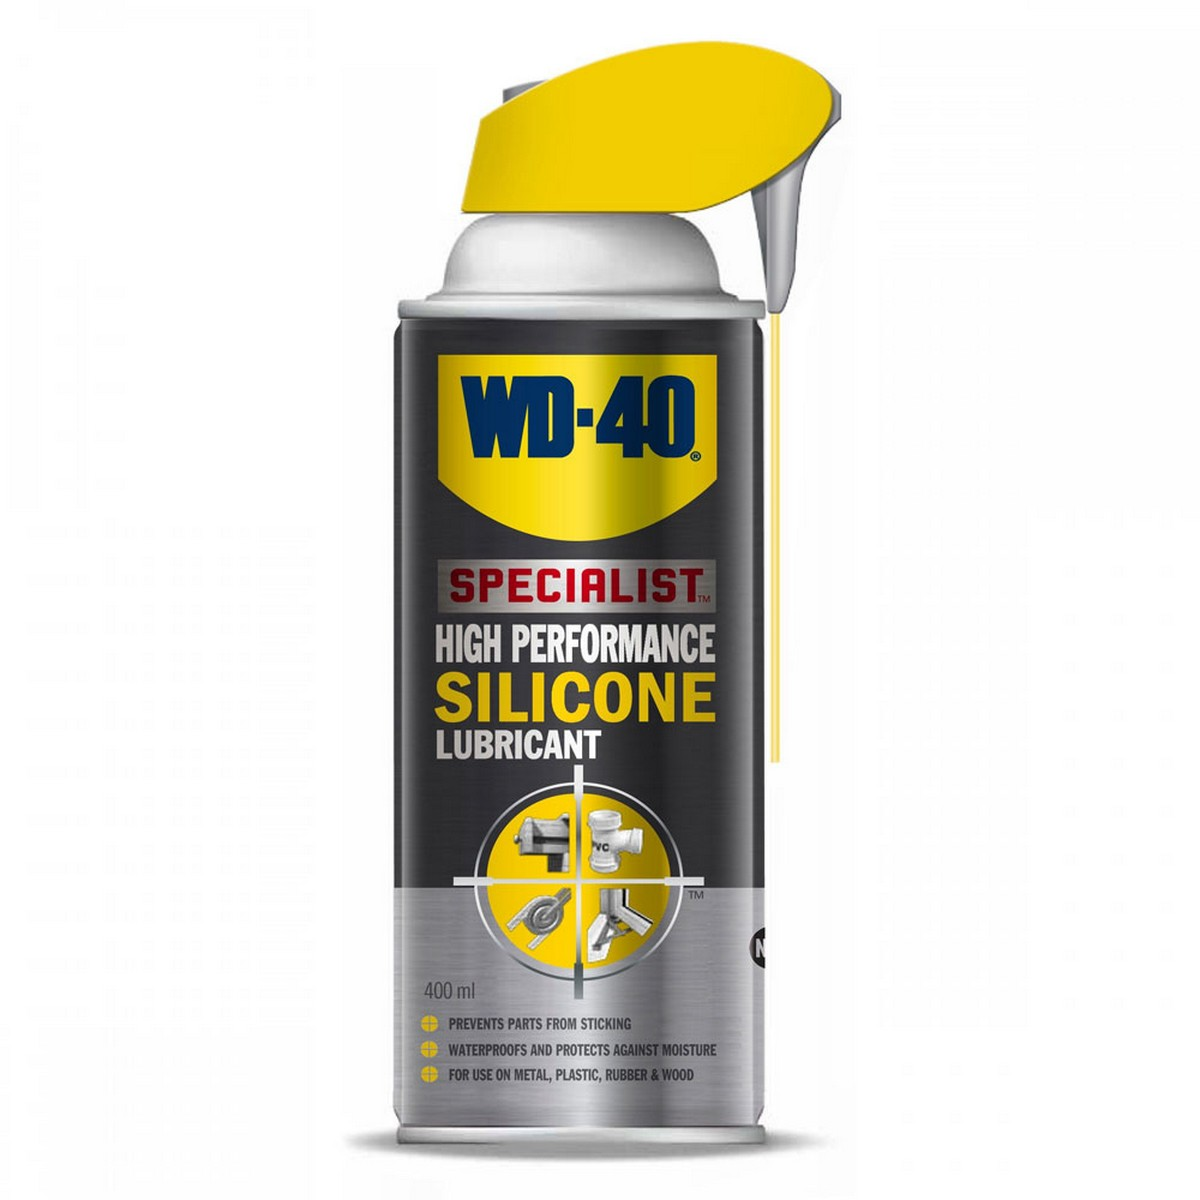 WD-40 Specialist Silicone Lubricant 400ml with Smart Straw - Made in UK